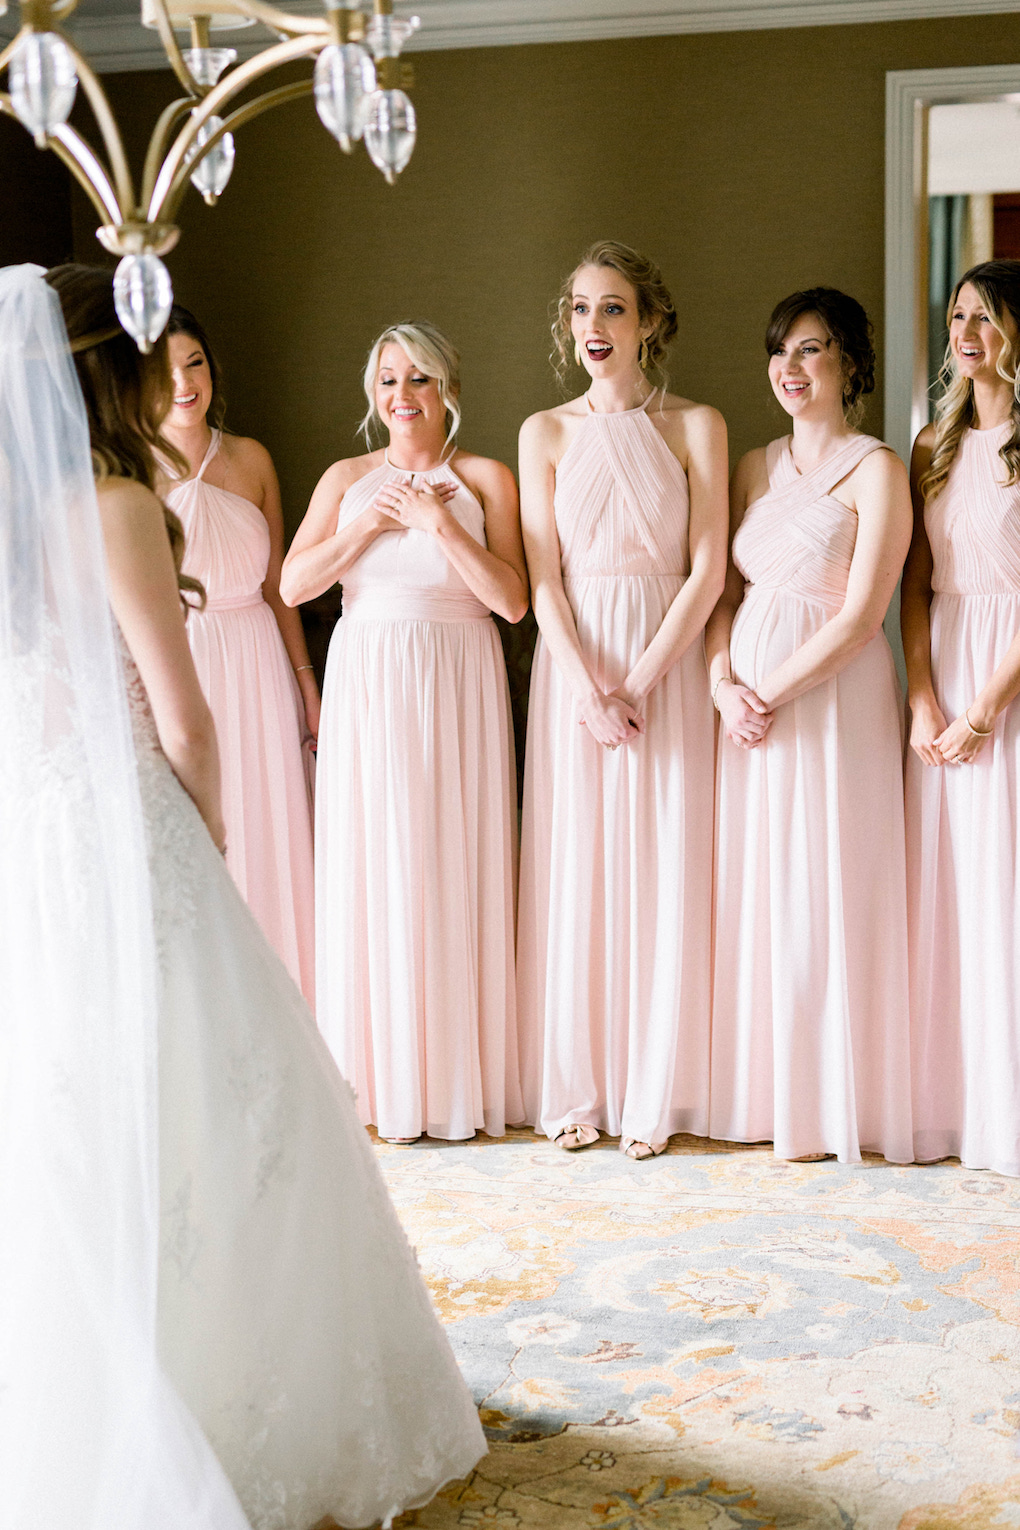 Bridesmaids reaction to wedding dress: Romantic Fairytale wedding at the Omni William Penn in Pittsburgh, PA planned by Exhale Events. Find more wedding inspiration at exhale-events.com!